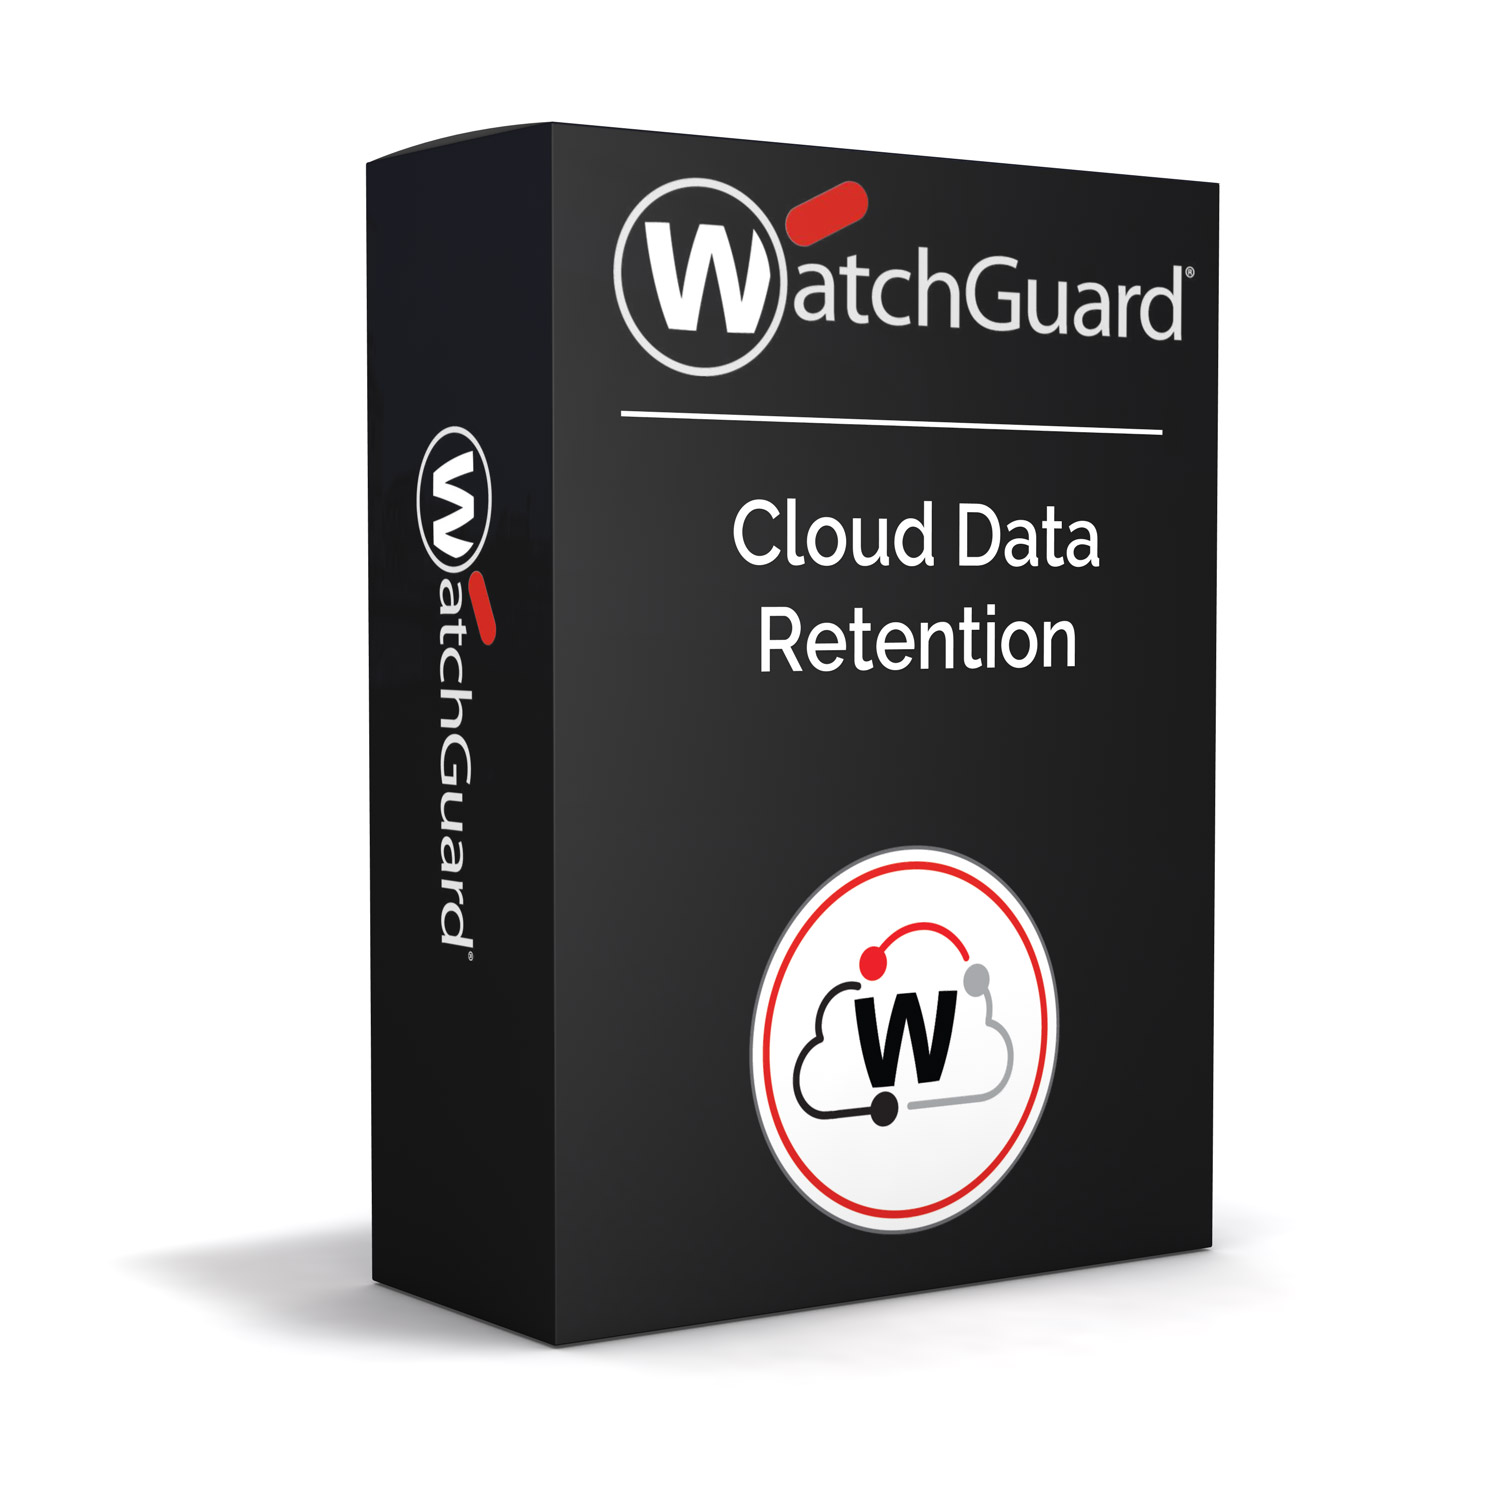 WatchGuard Cloud 1-month data retention for FireboxV Small - 3-yr